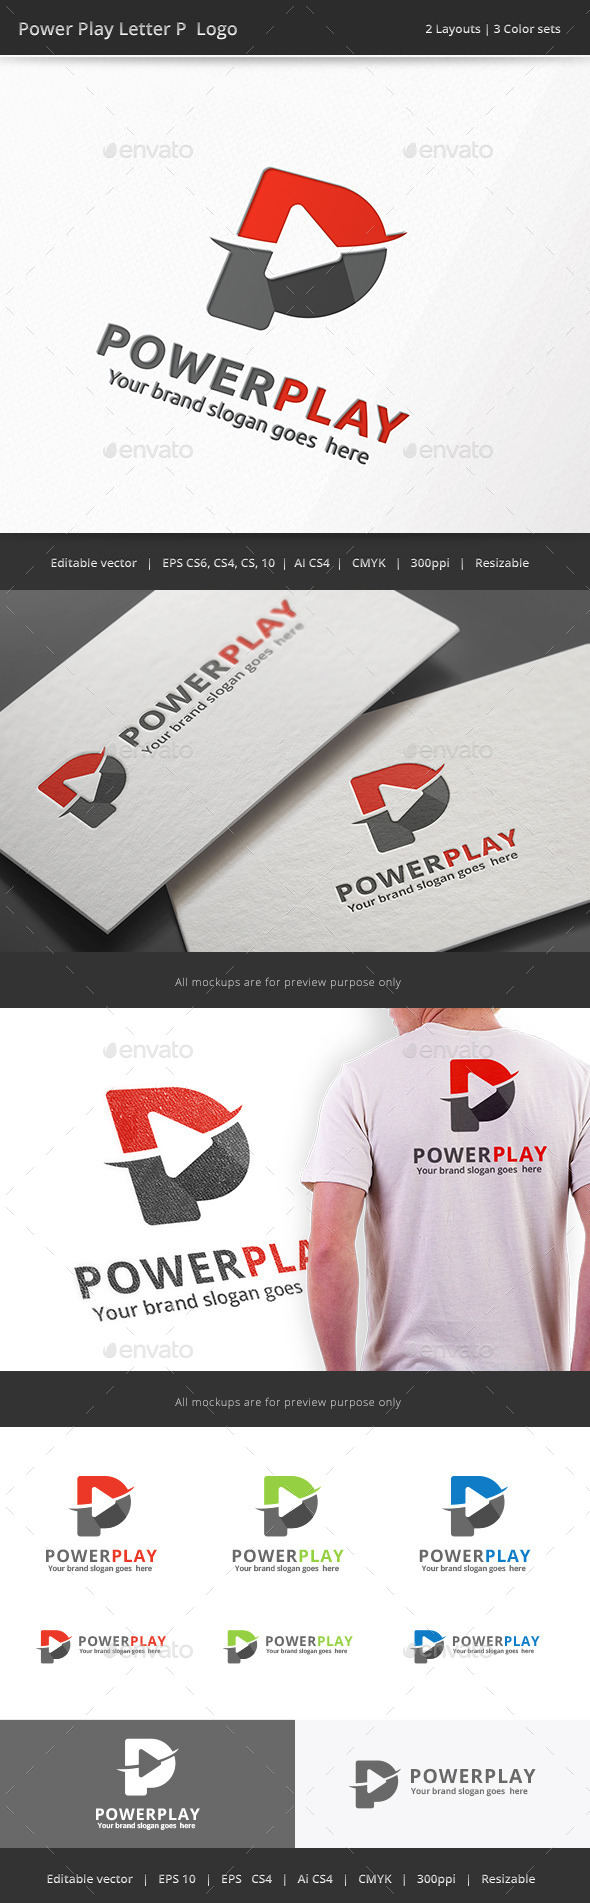 Power Play Letter P Logo - Letters Logo Templates